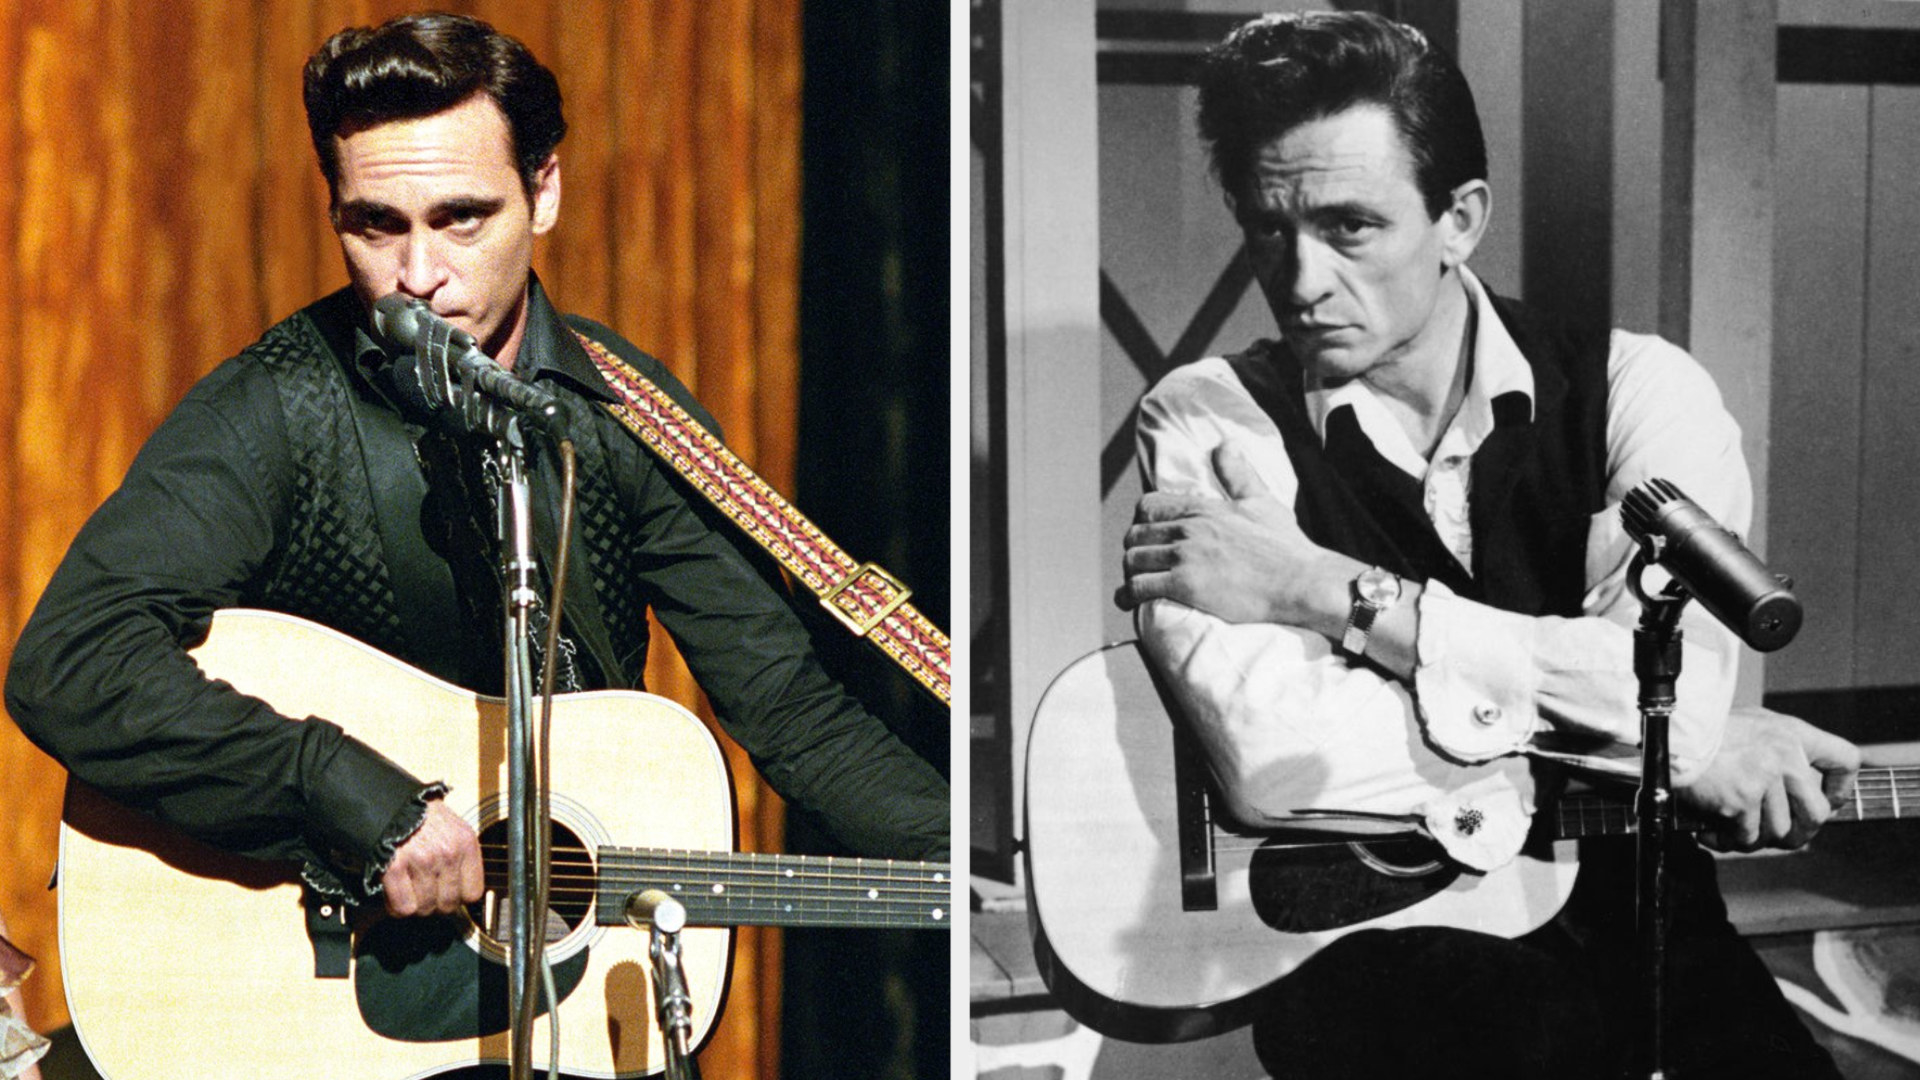 Joaquin Phoenix as Johnny Cash performing on stage with his guitar, singing in a serious manner; Johnny Cash posing on stage with his guitar in a sad and serious manner